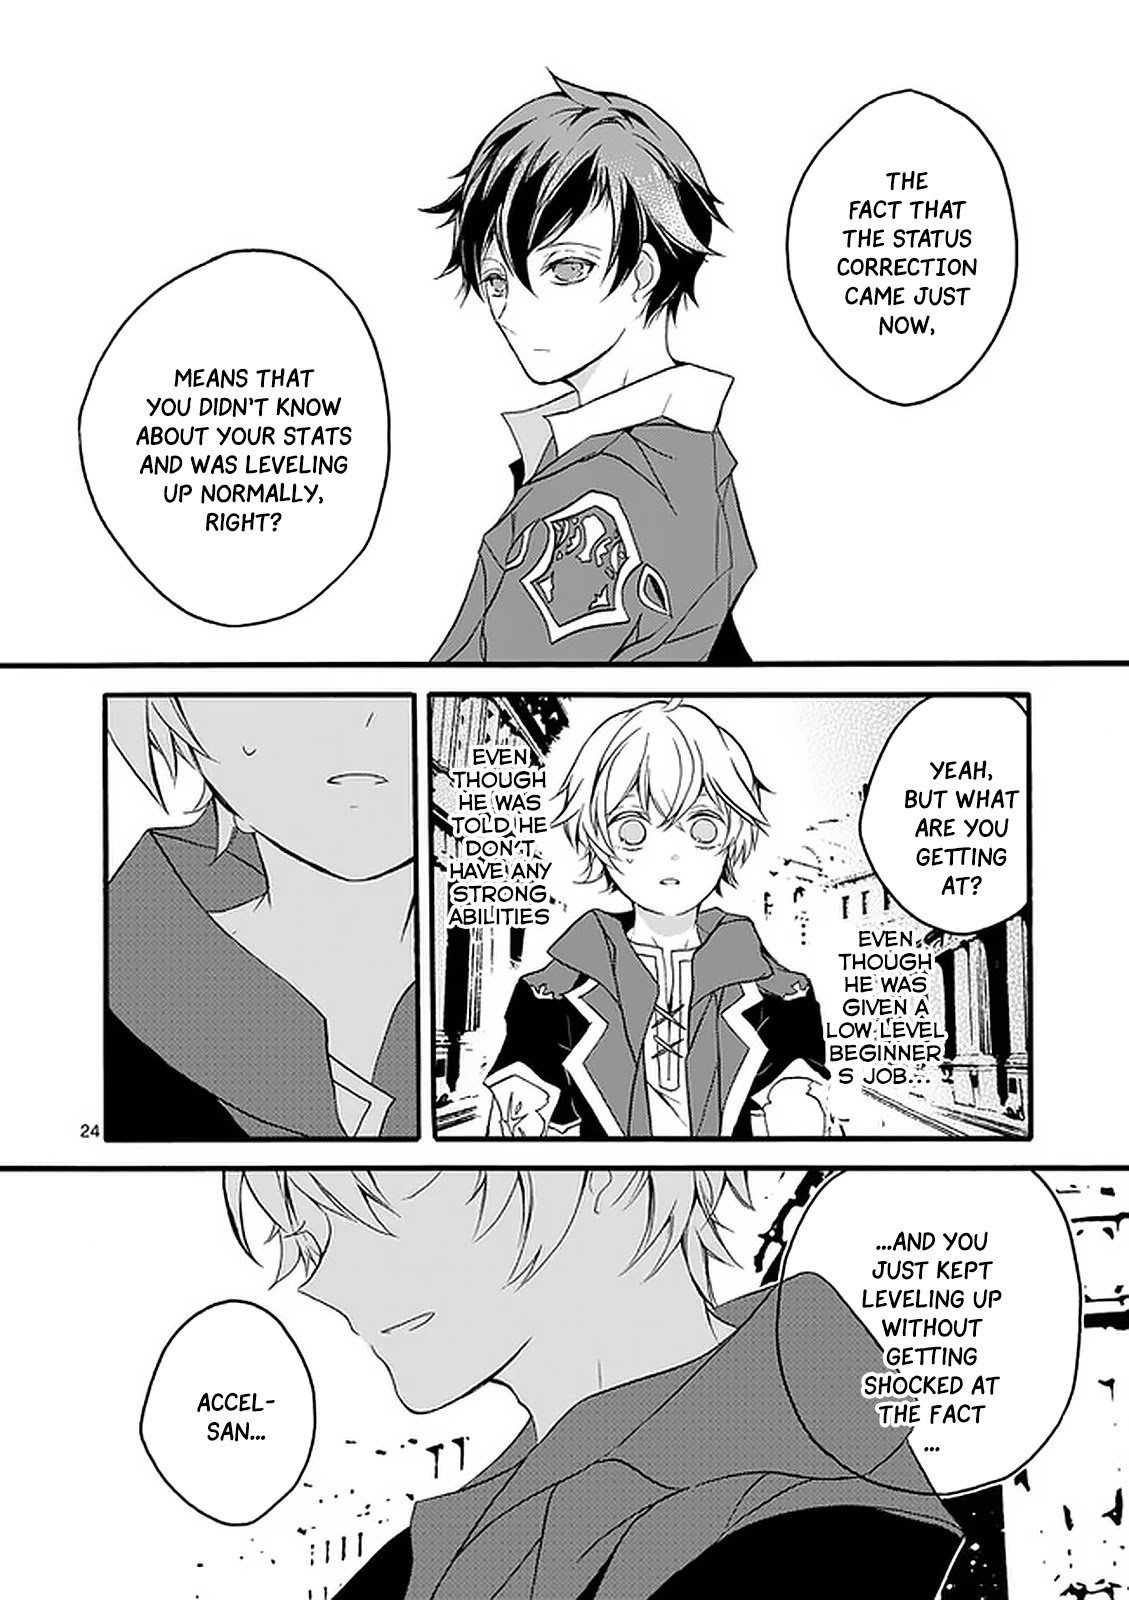 Manga From The Strongest Job of Dragon Knight, To The Beginner Job Carrier, Somehow, I Am Dependent On The Heroes - Chapter 2 Page 25